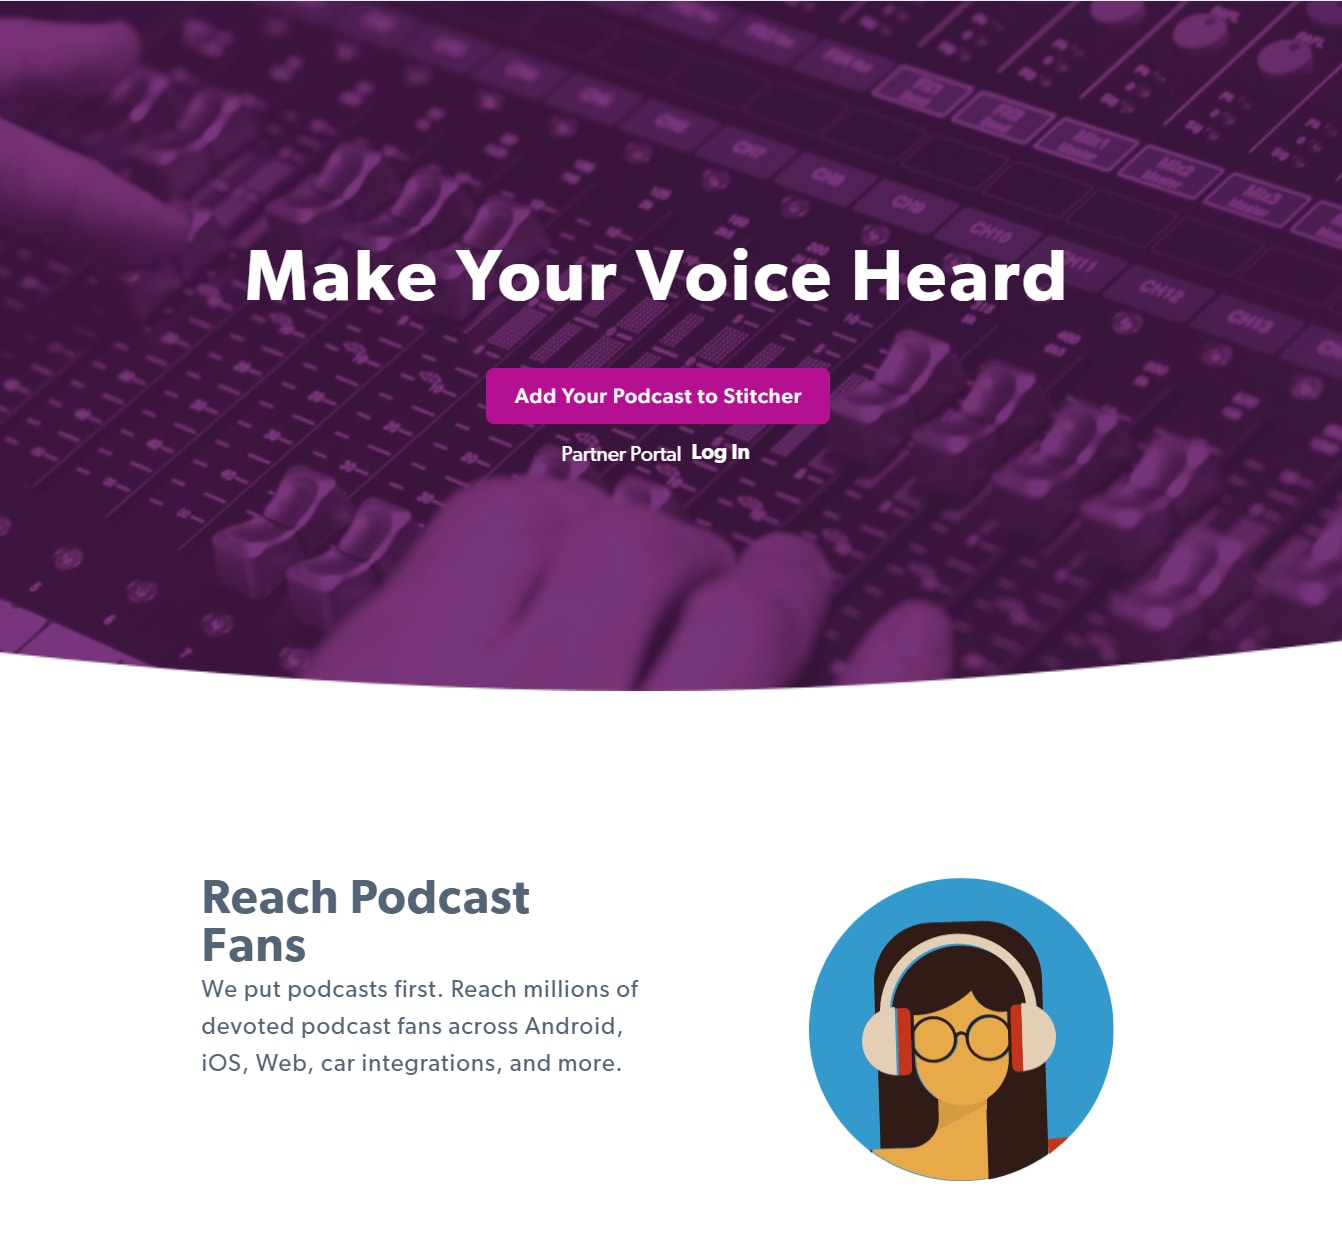 How to Submit Podcast to Stitcher Add Your Show